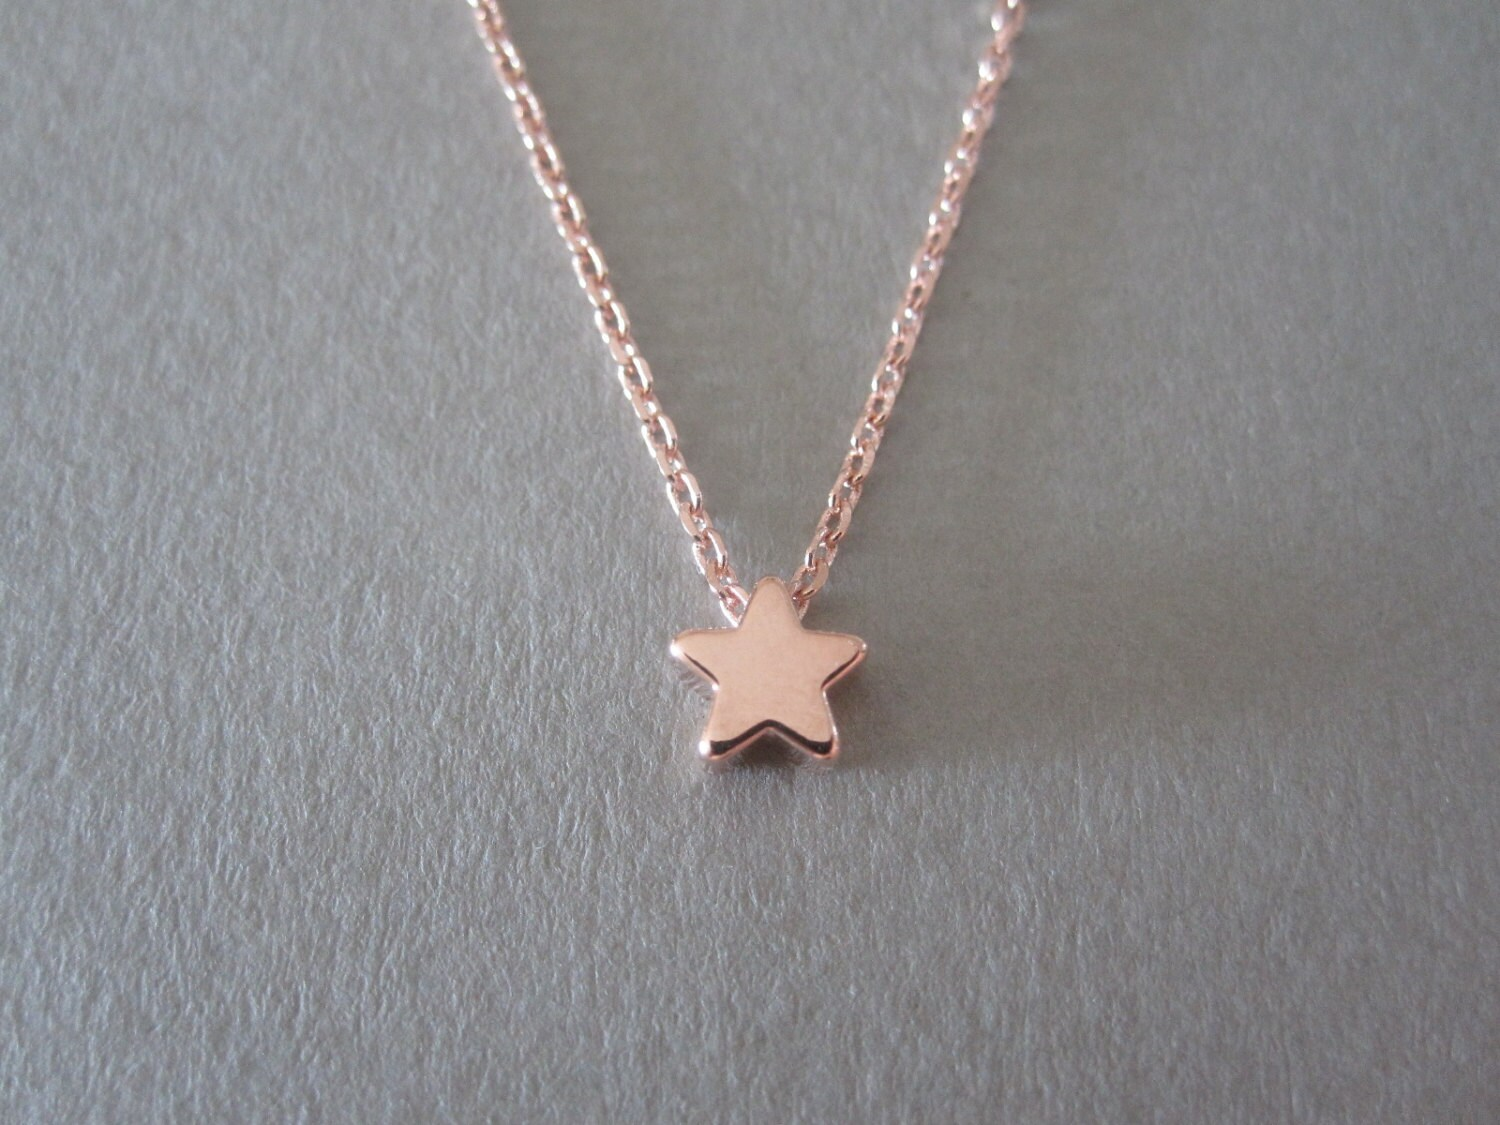 star gold minim necklace tiny elegant on delicate necklaces chain small jewelry dainty pendant